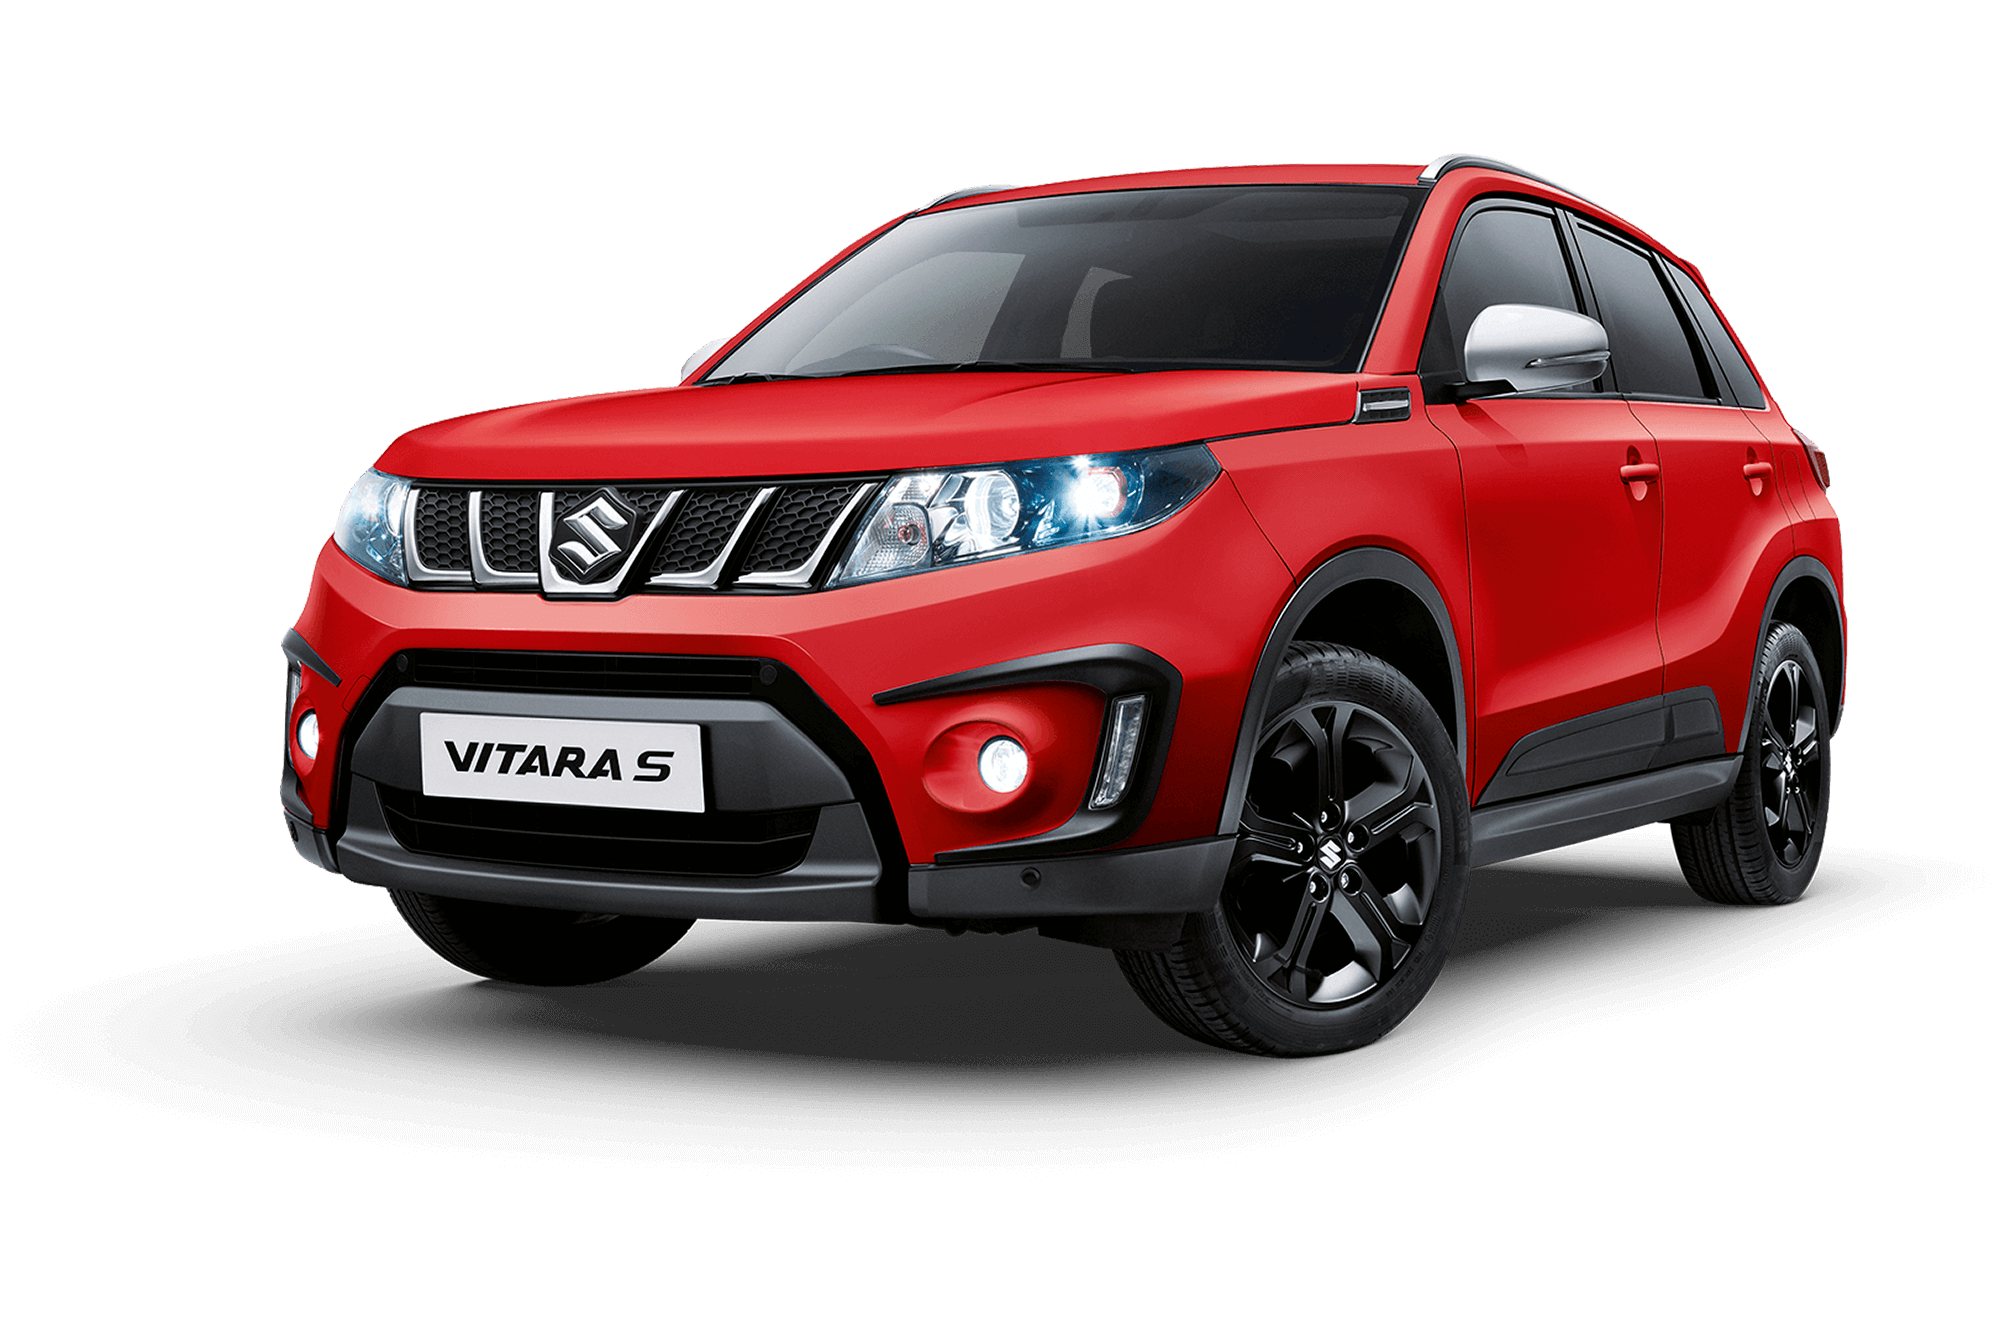 new suzuki vitara s the sporty addition to the vitara range. Black Bedroom Furniture Sets. Home Design Ideas